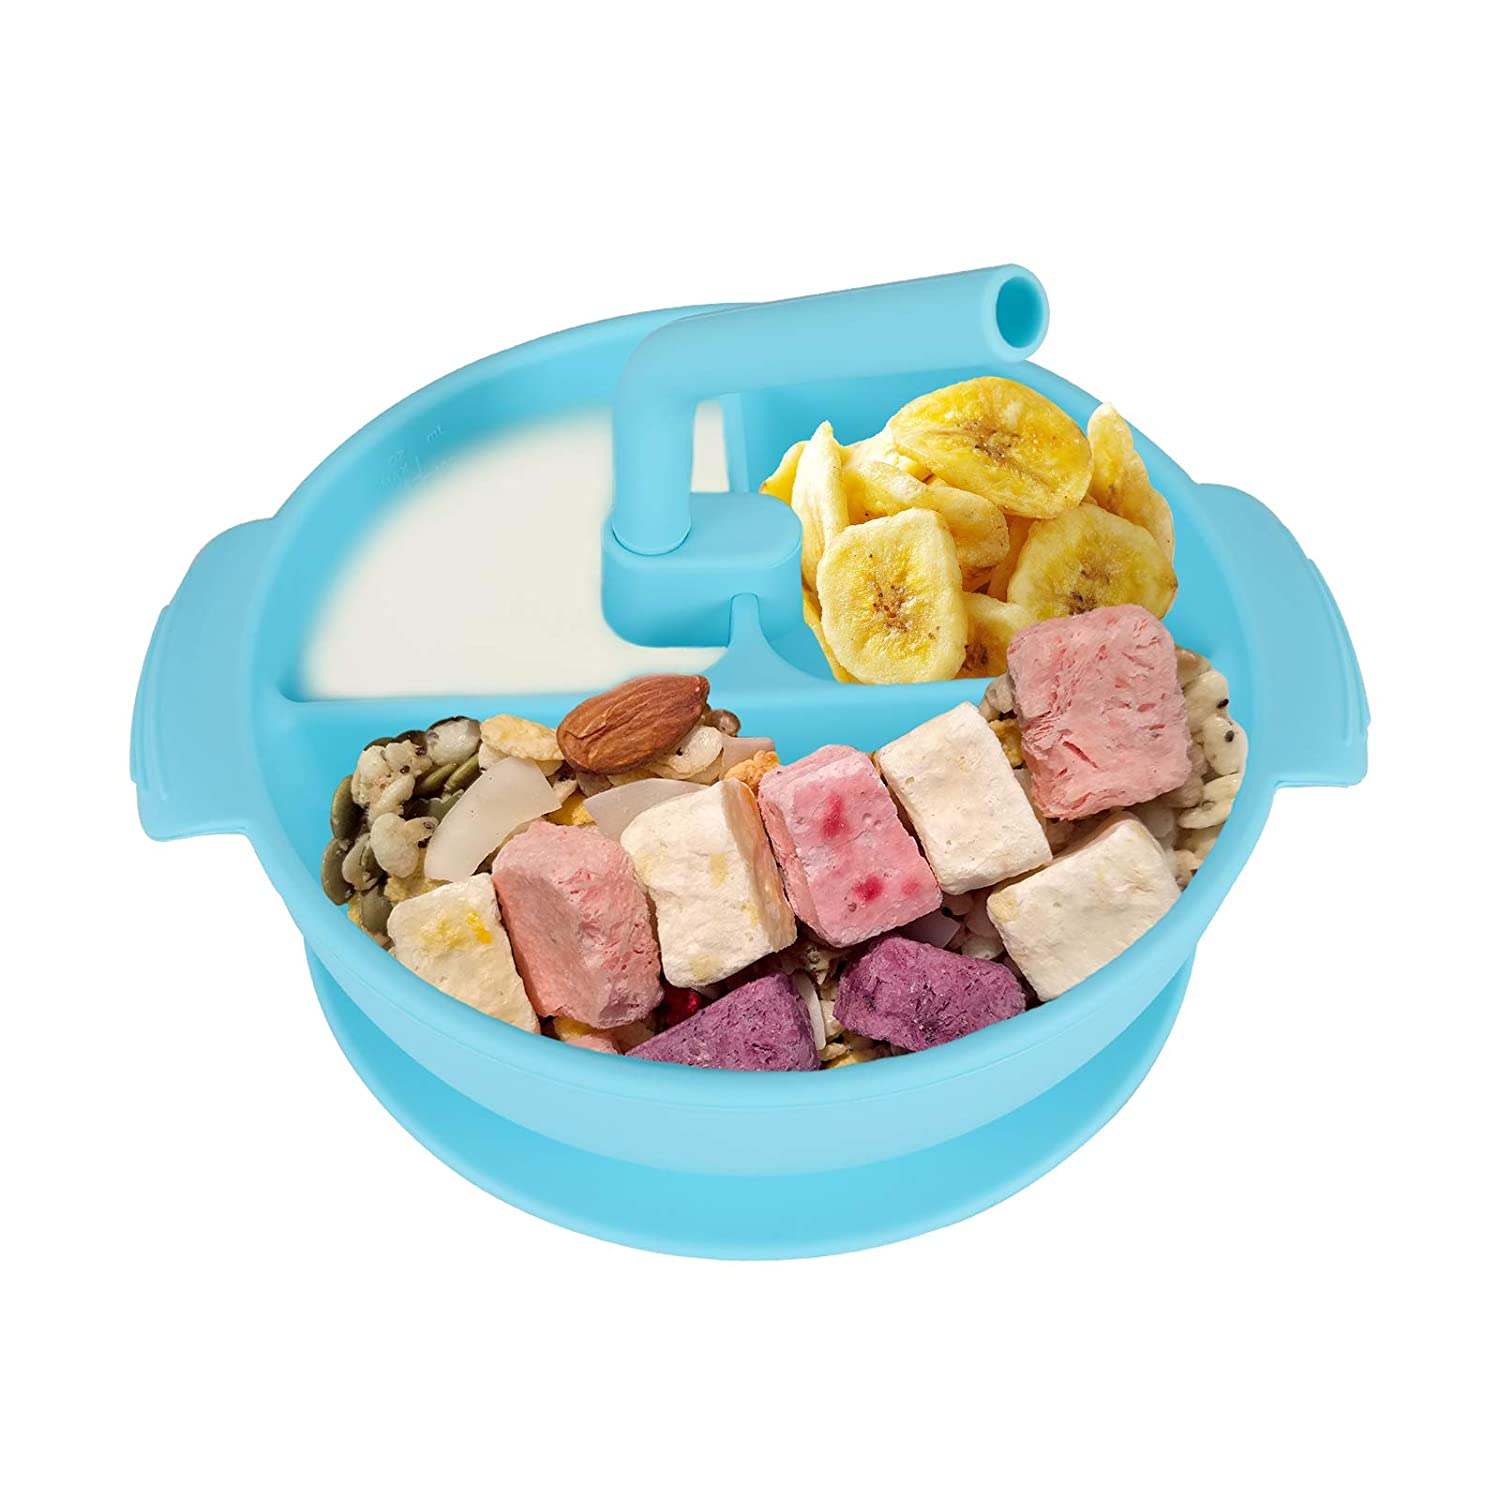 MUCH Silicone Grip Divided Dish Suction Plate for Baby Toddlers with Water Sucker, BPA Free, Microwave & Dishwasher Safe Food Material Kids, Infants Plates with Dividers (Blue)